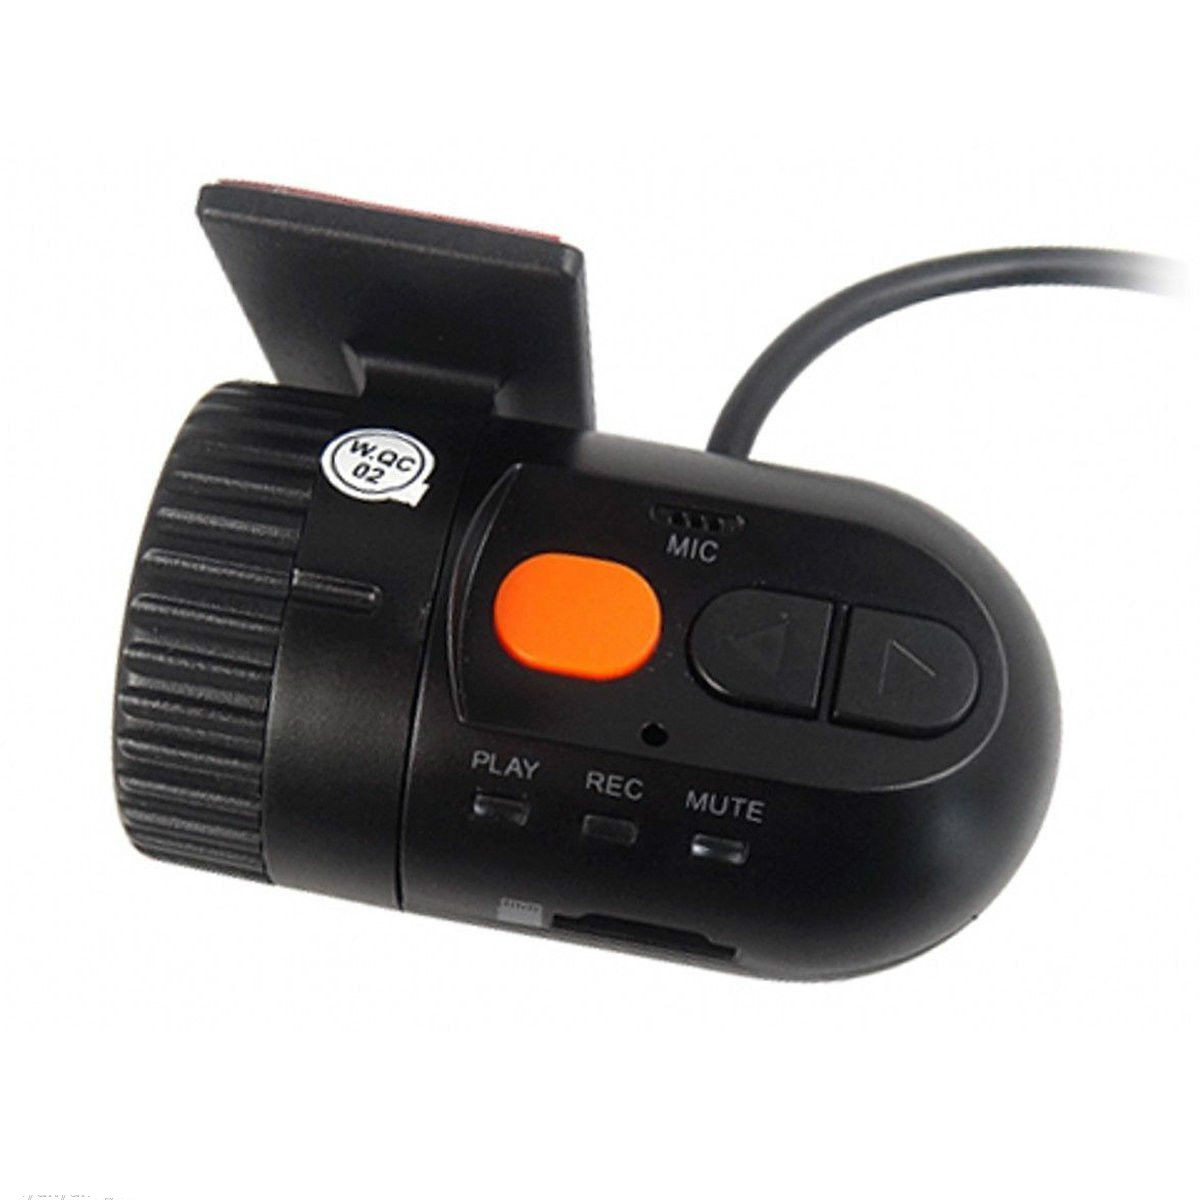 hd mini car dvr video recorder hidden dash cam night vision vehicle spy camera ebay. Black Bedroom Furniture Sets. Home Design Ideas